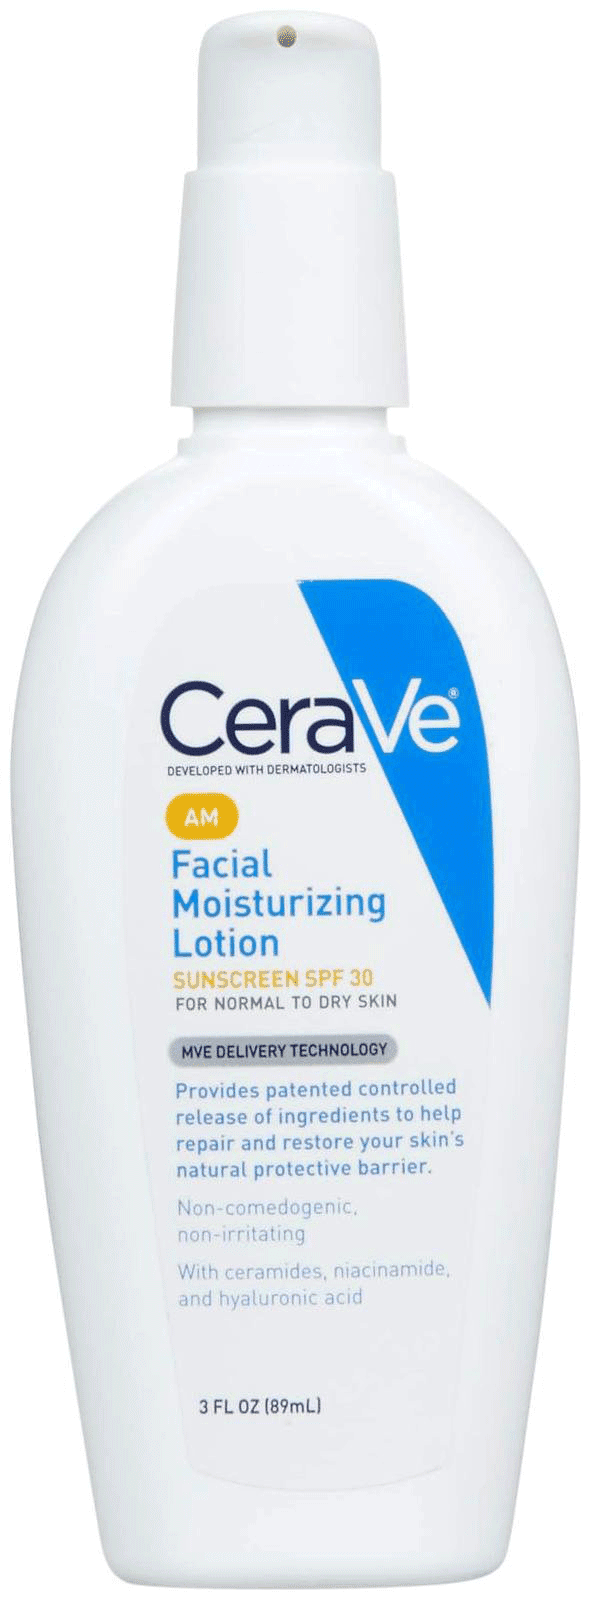 Facial Moisturizing Lotion